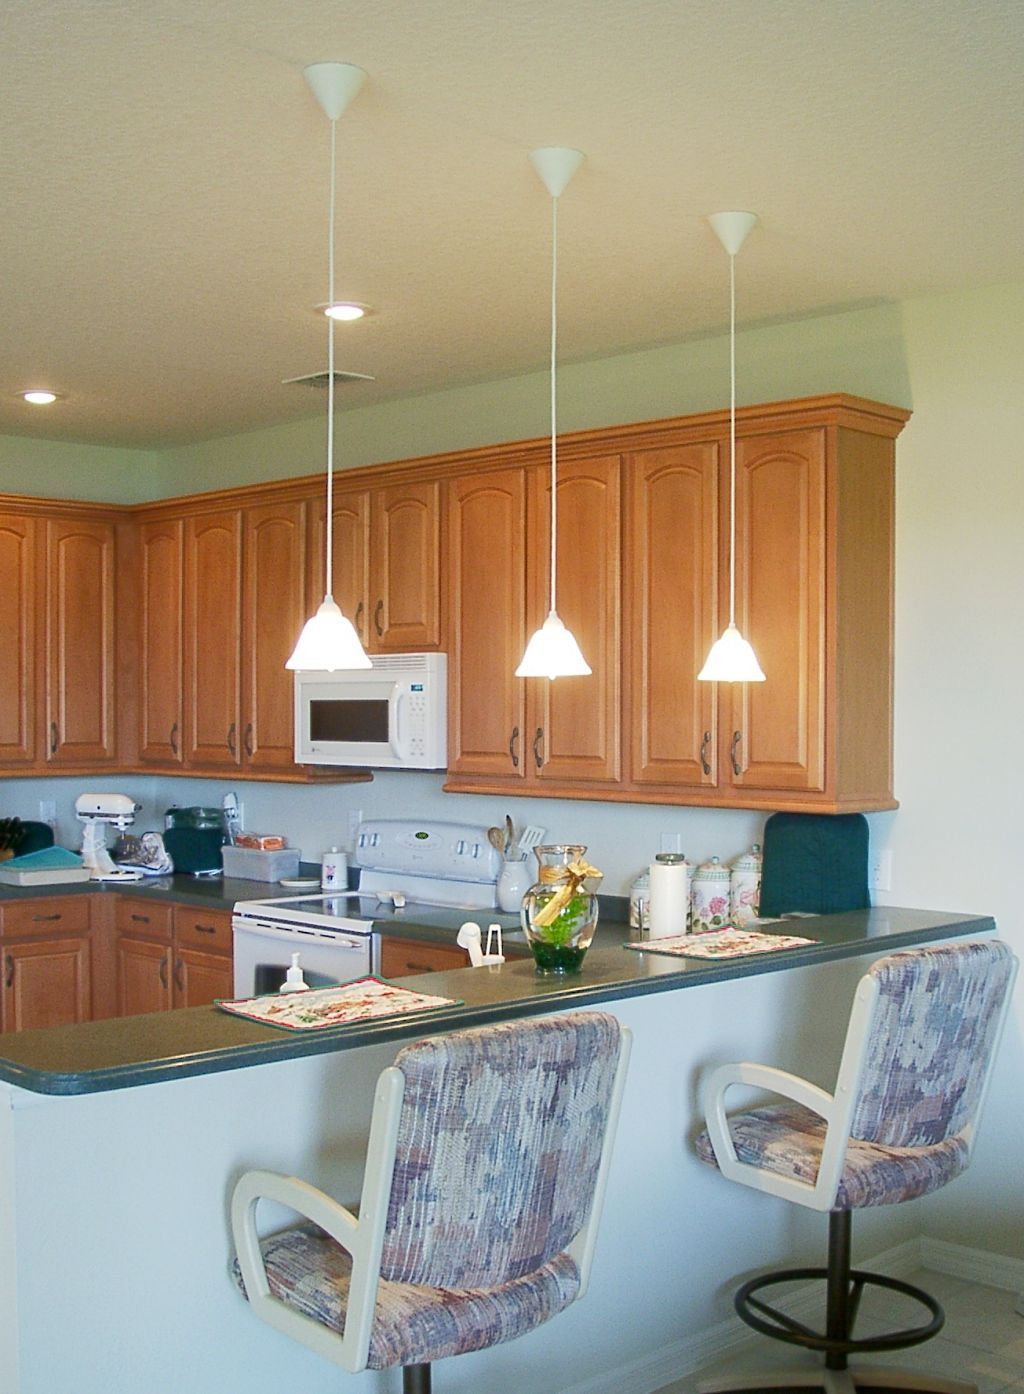 Low Hanging Mini Pendant Lights Over Kitchen Island For An Apartment